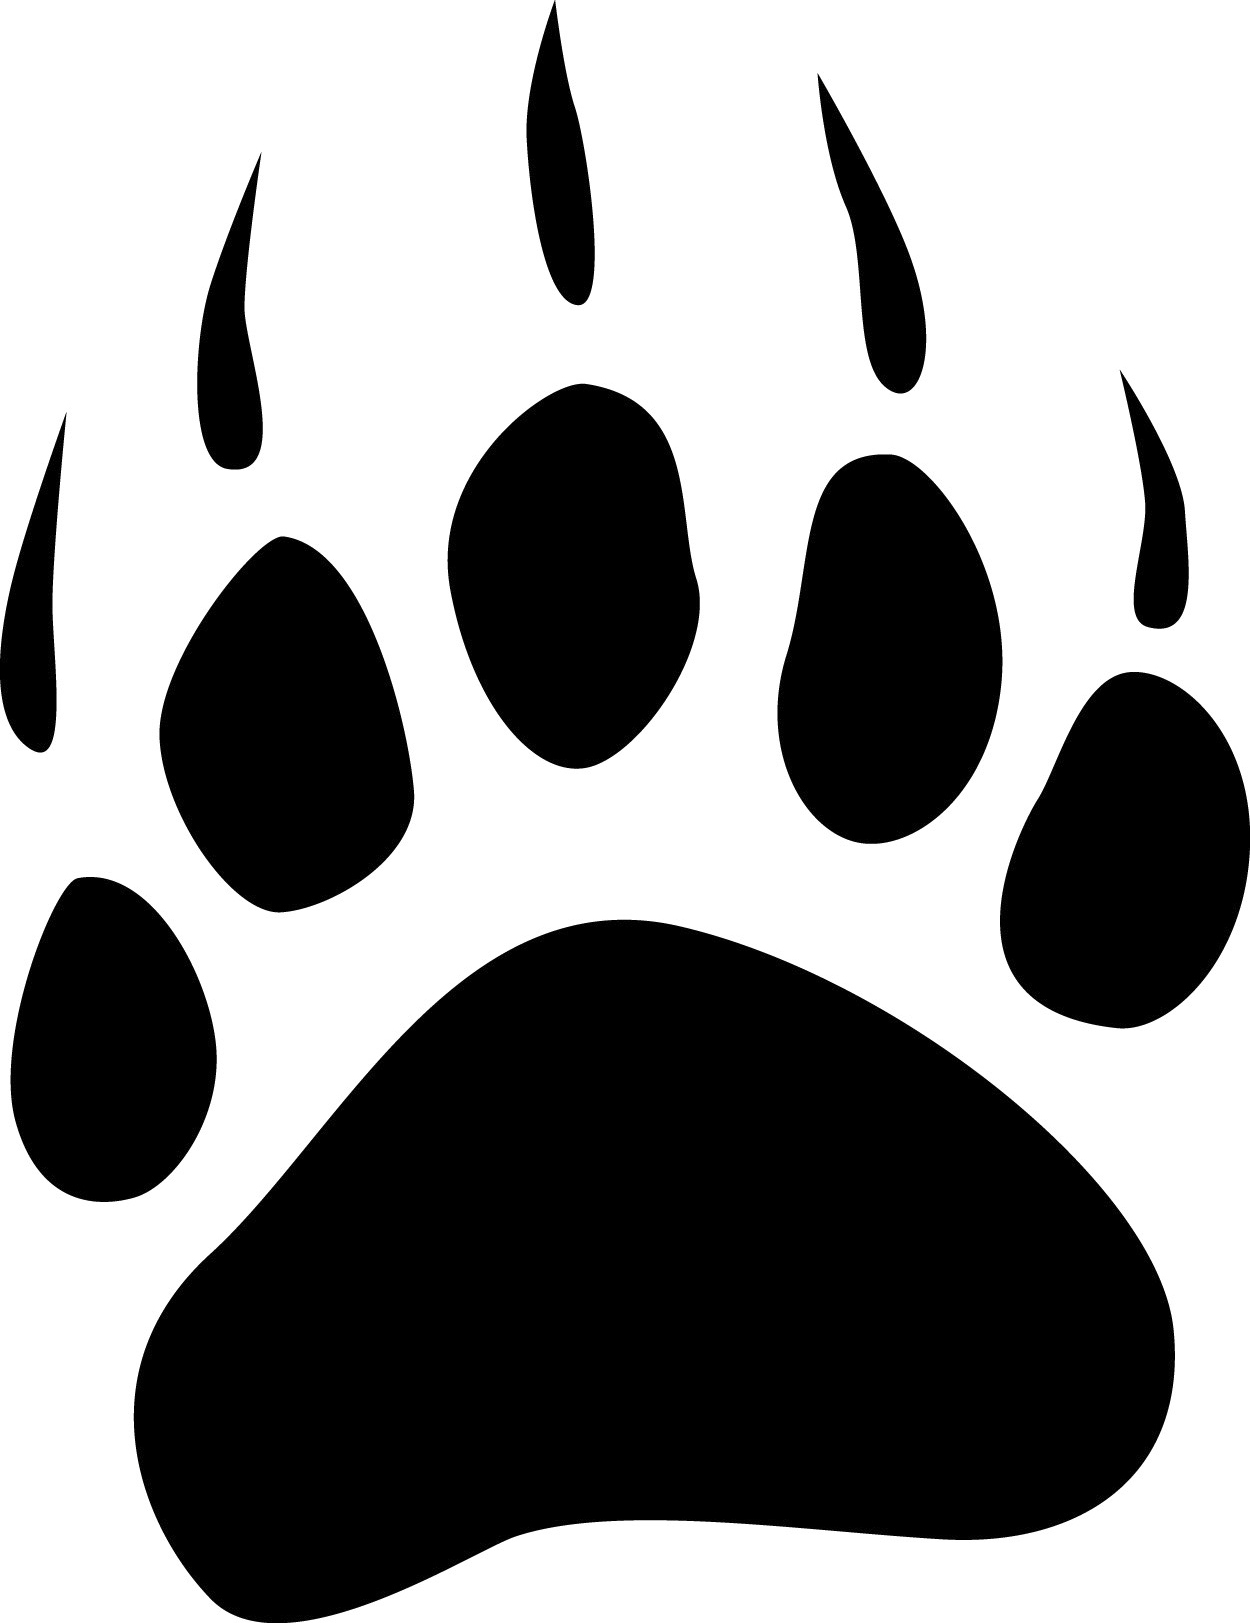 grizzly bear paw print clipart-grizzly bear paw print clipart-0